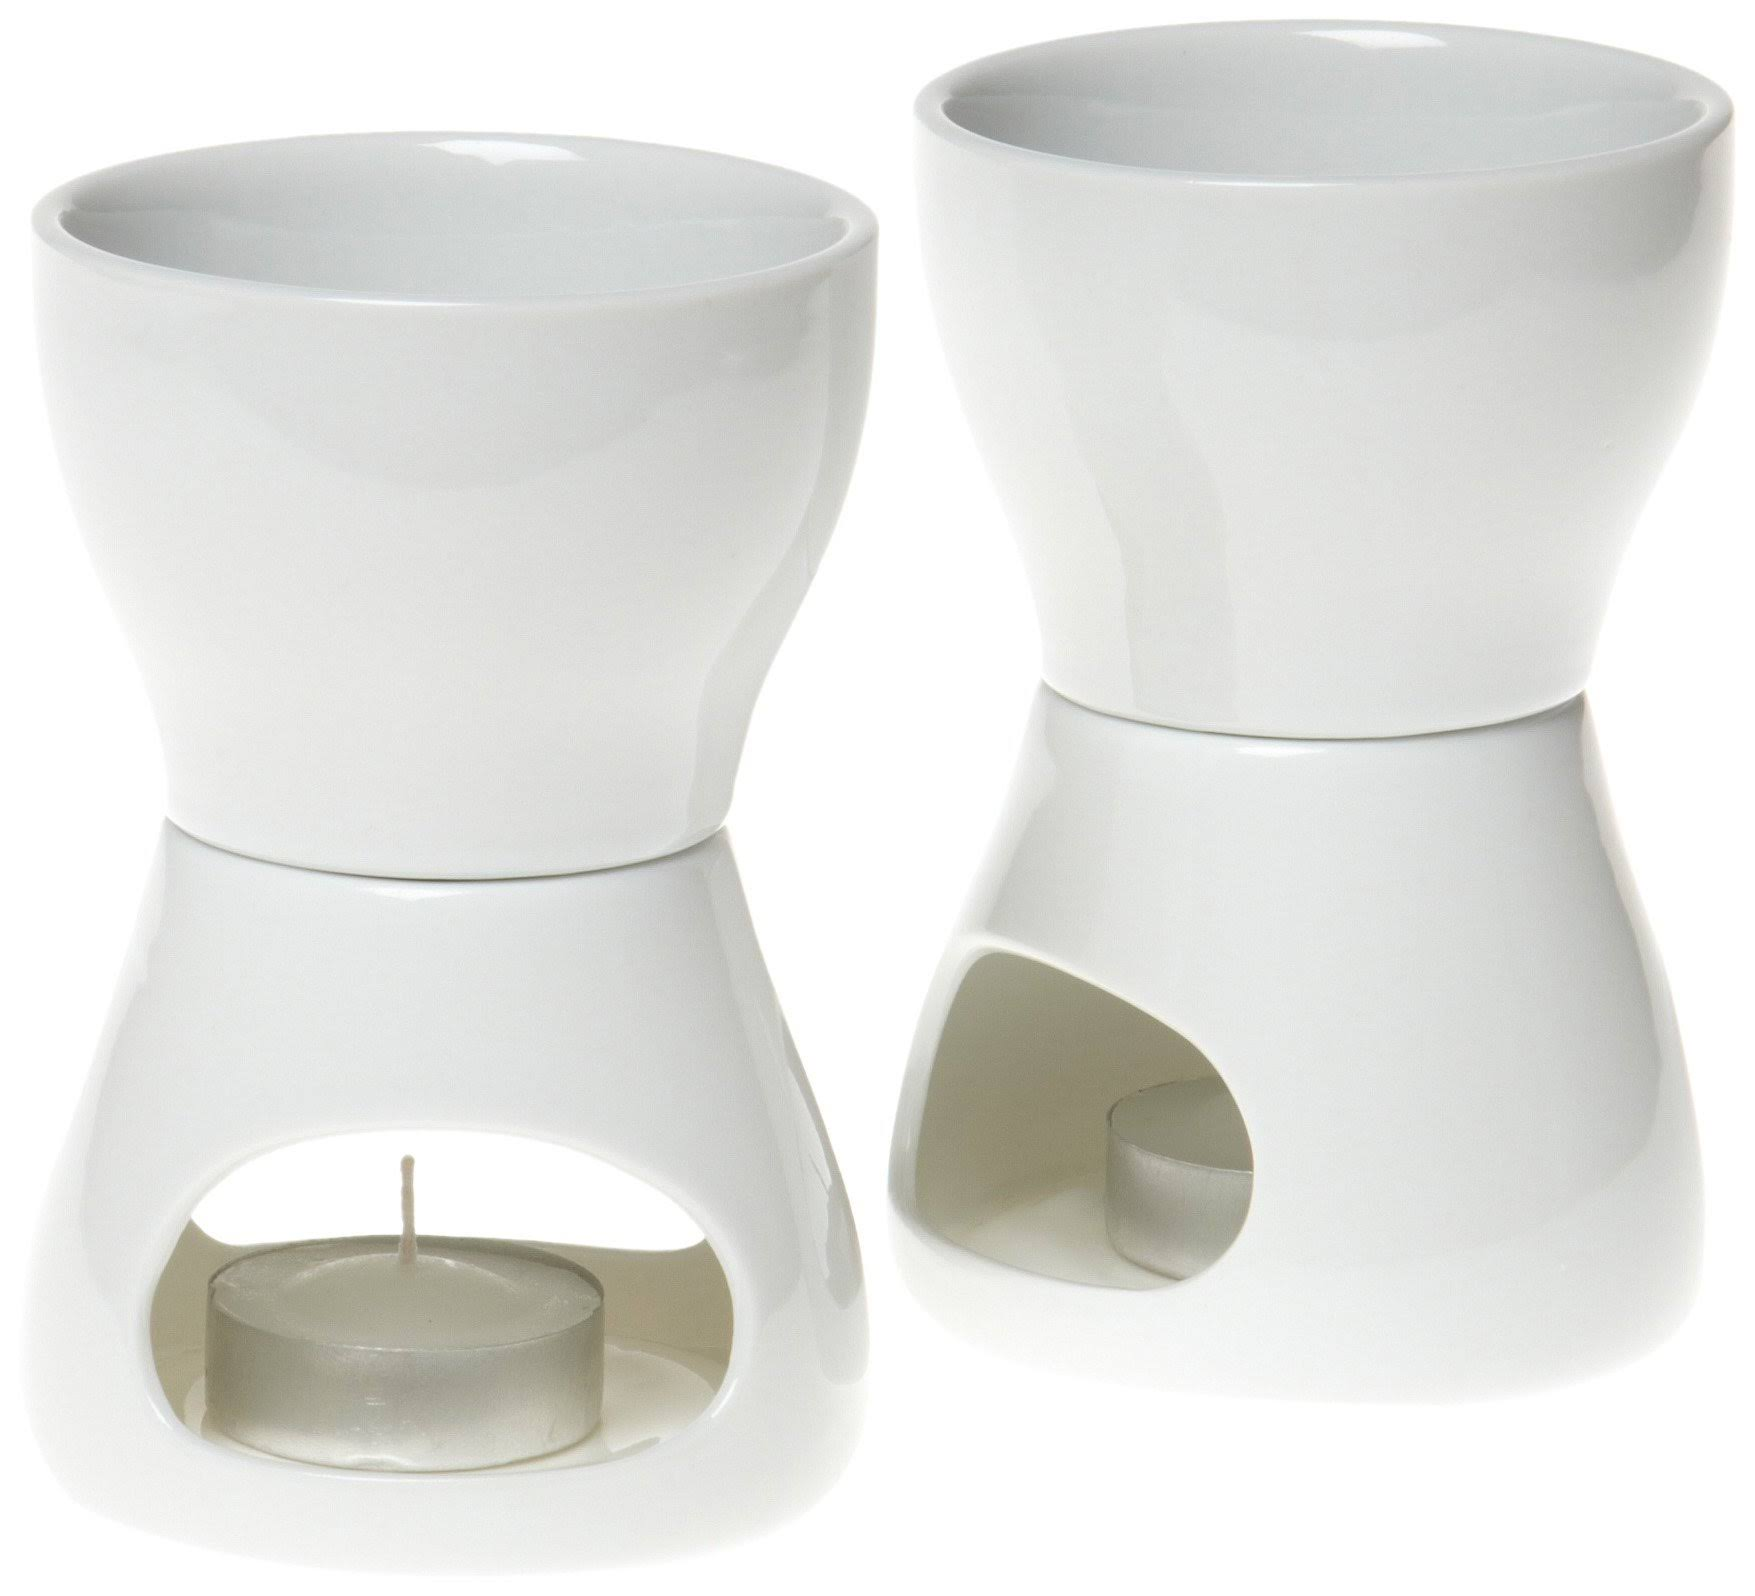 Norpro 213 Porcelain Butter Warmer - White, 2 Pieces